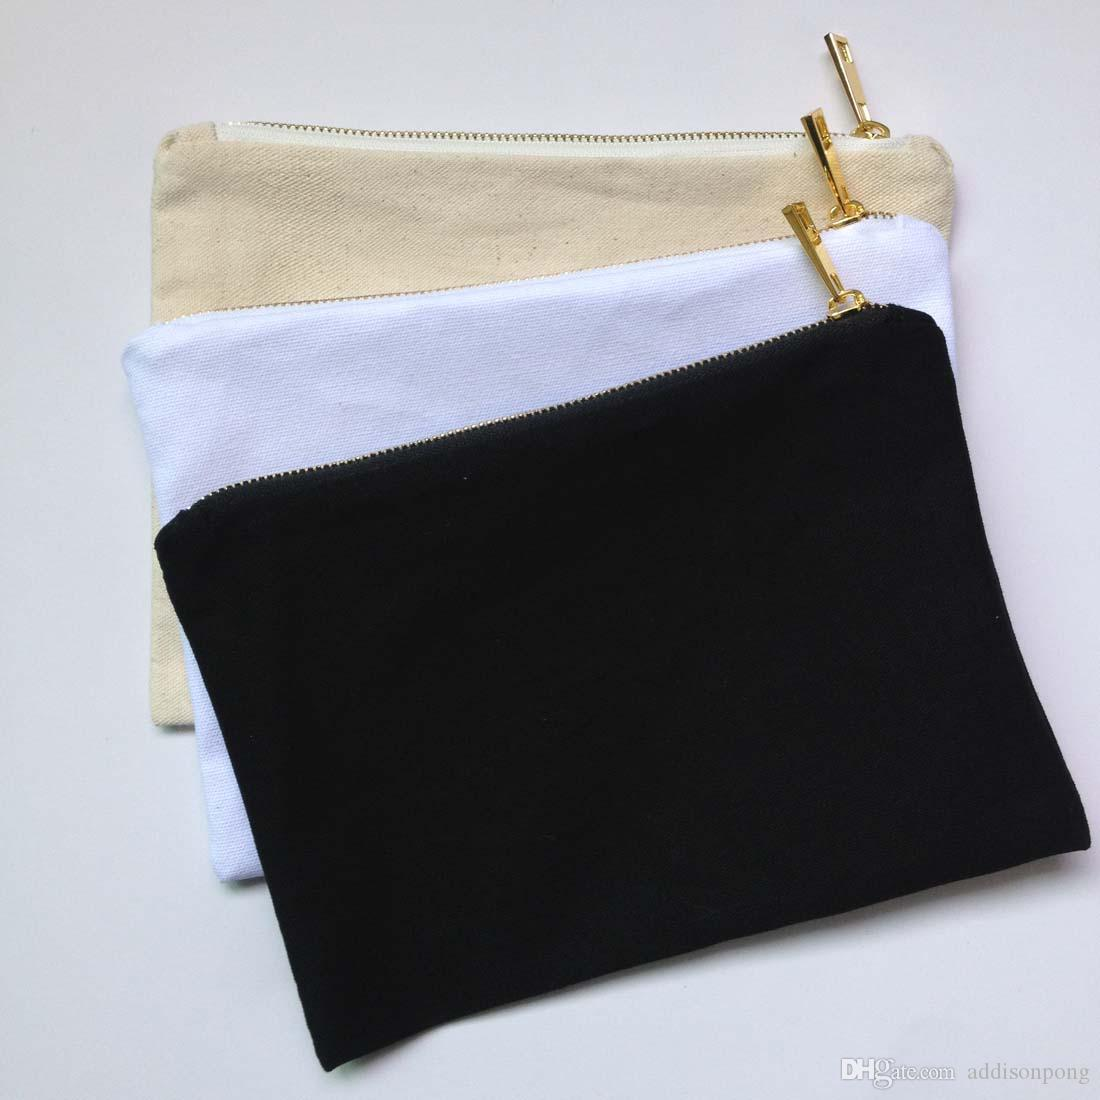 Plain Natural Cotton Canvas Make Up Bag with Matching Color Lining ...